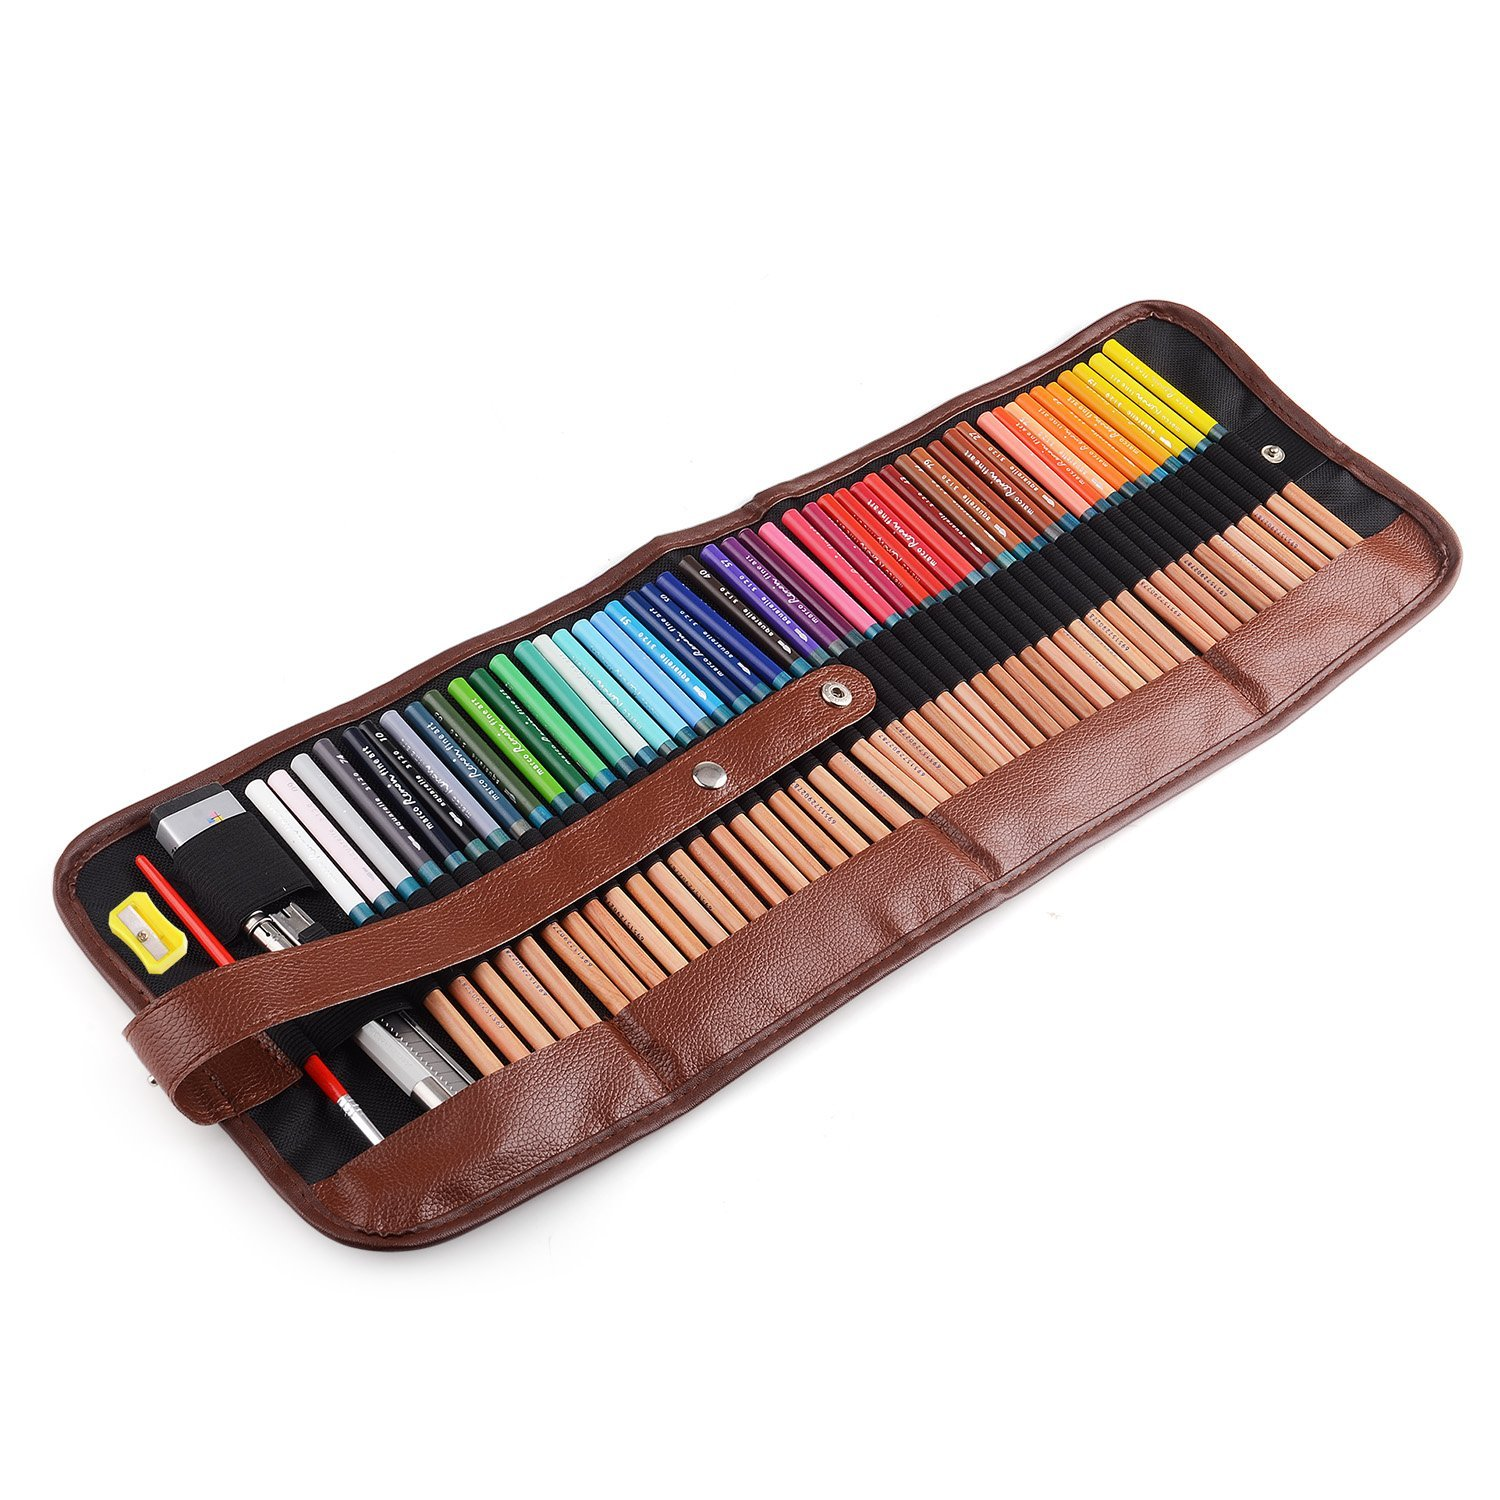 Marco Renoir Fine Art 48 Water Color Drawing Pencils +Eraser pencil extender Set With Metal Tin and Roll Up Pouch Canvas Pen bag for Artist Writing Sketching Secret Garden Coloring Book